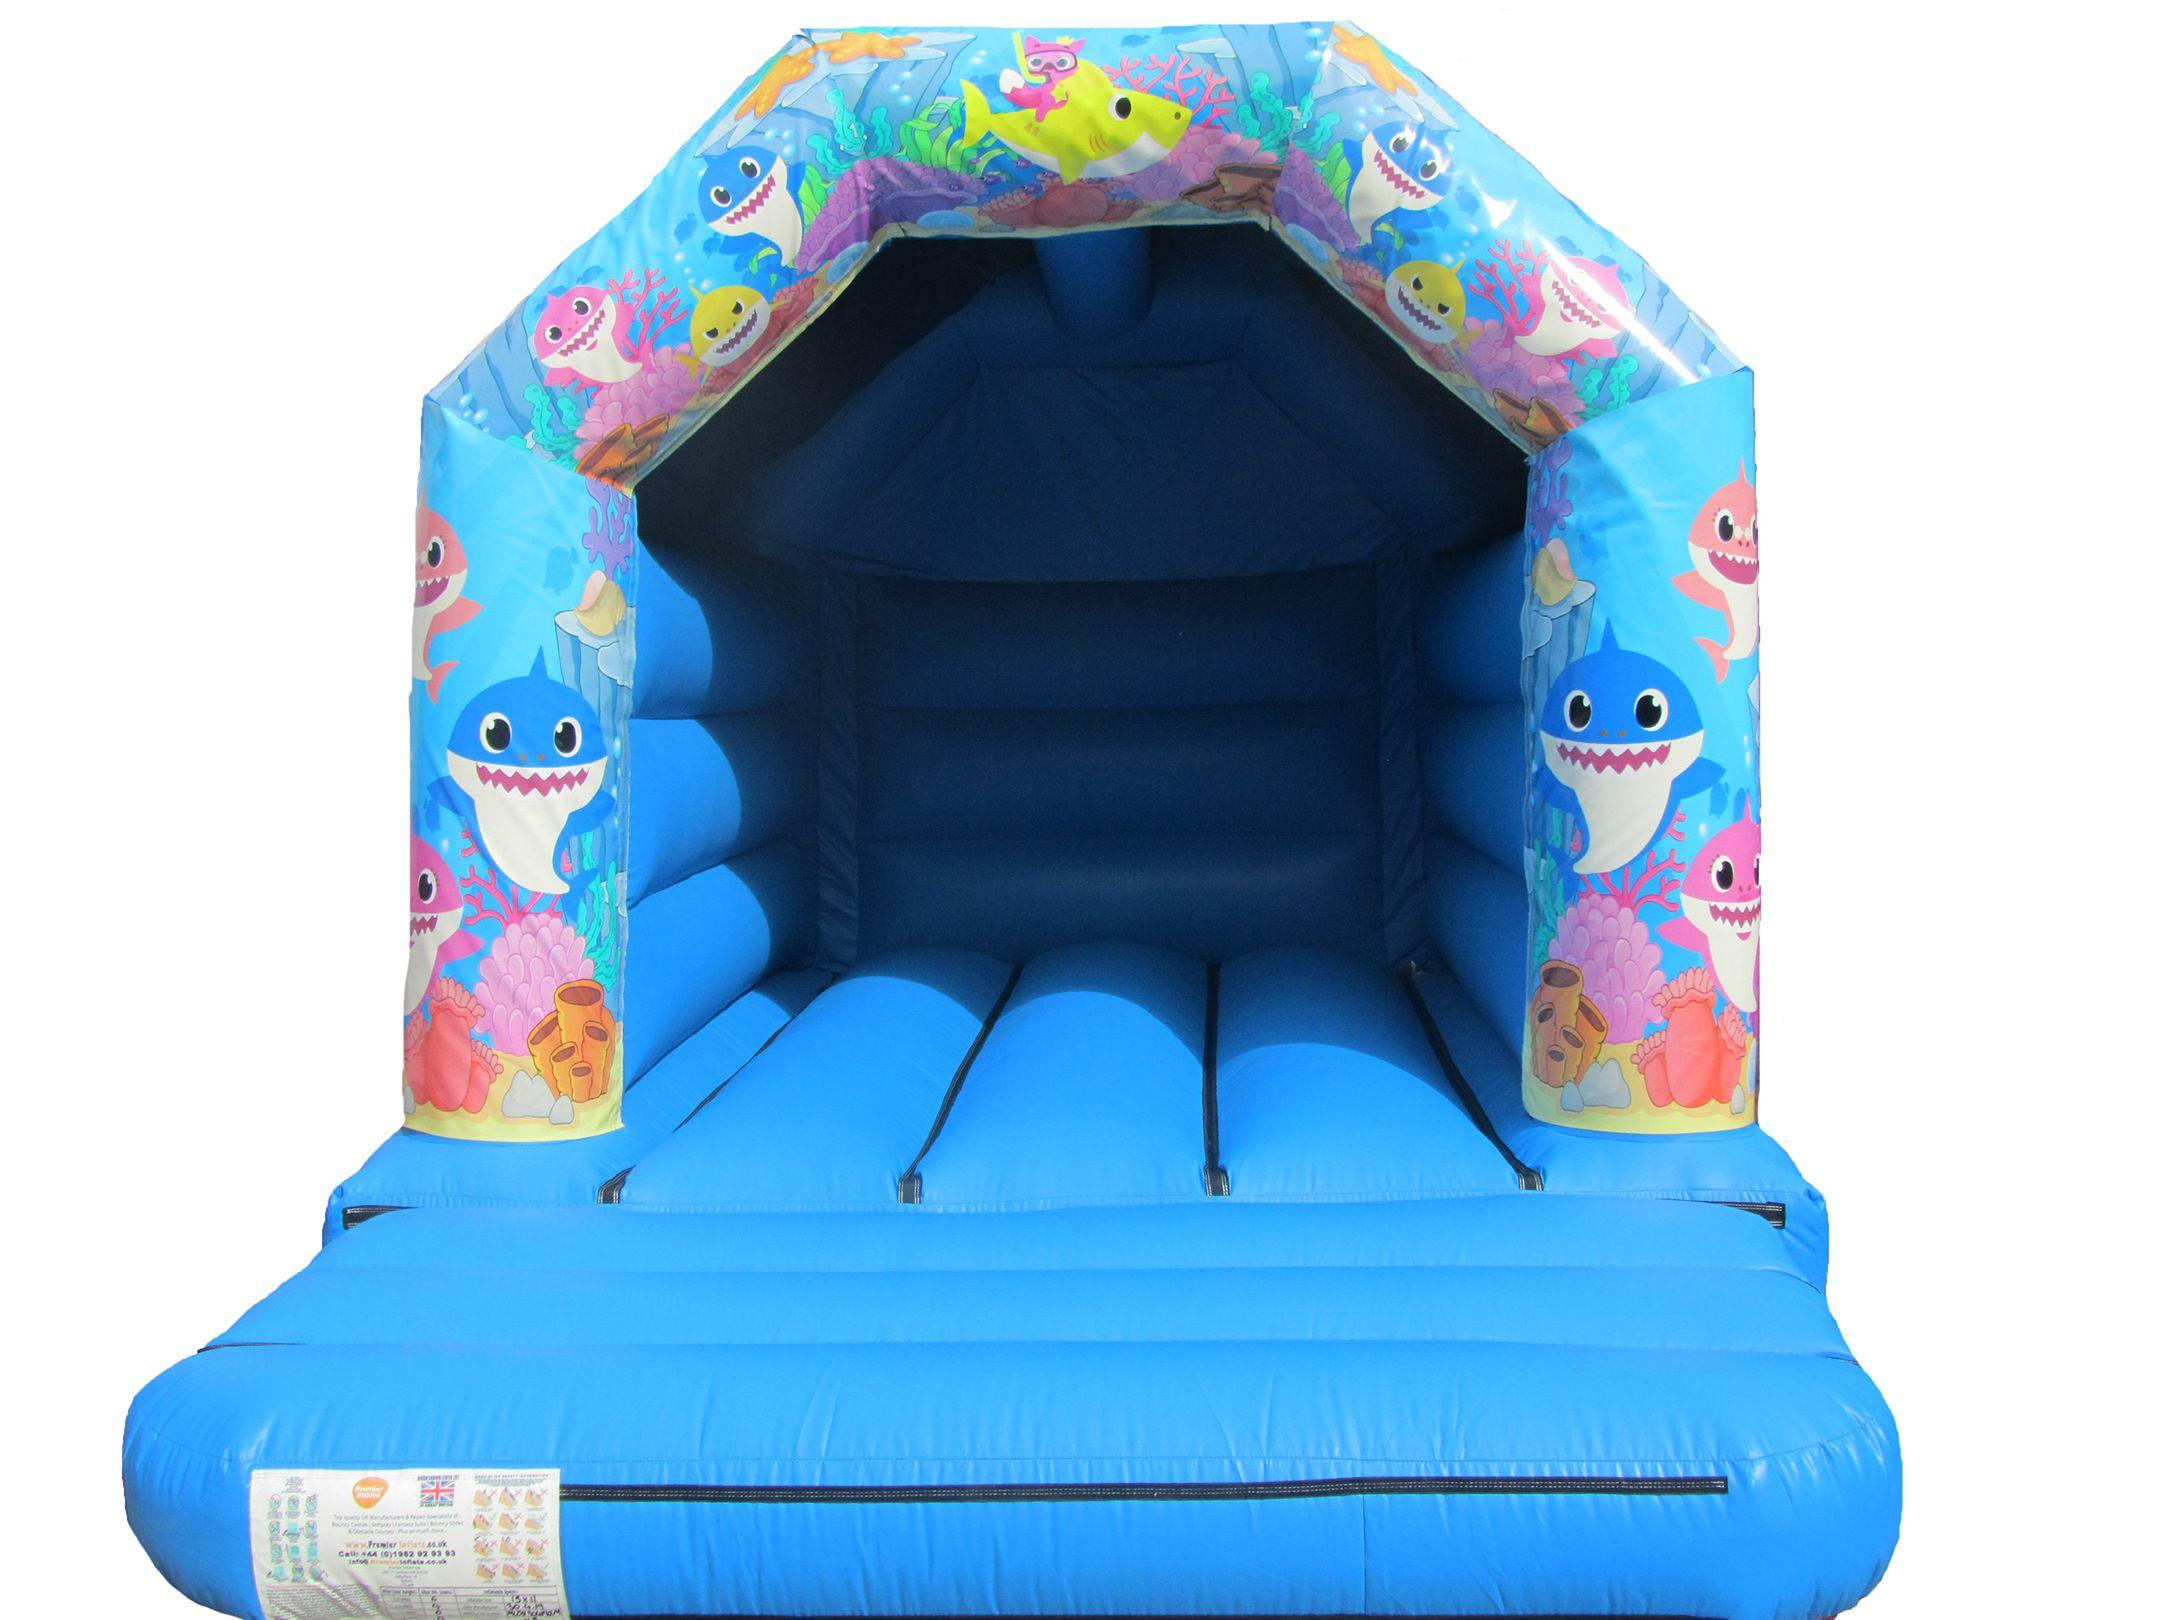 Toddler Themed Bouncy Castle for Sale